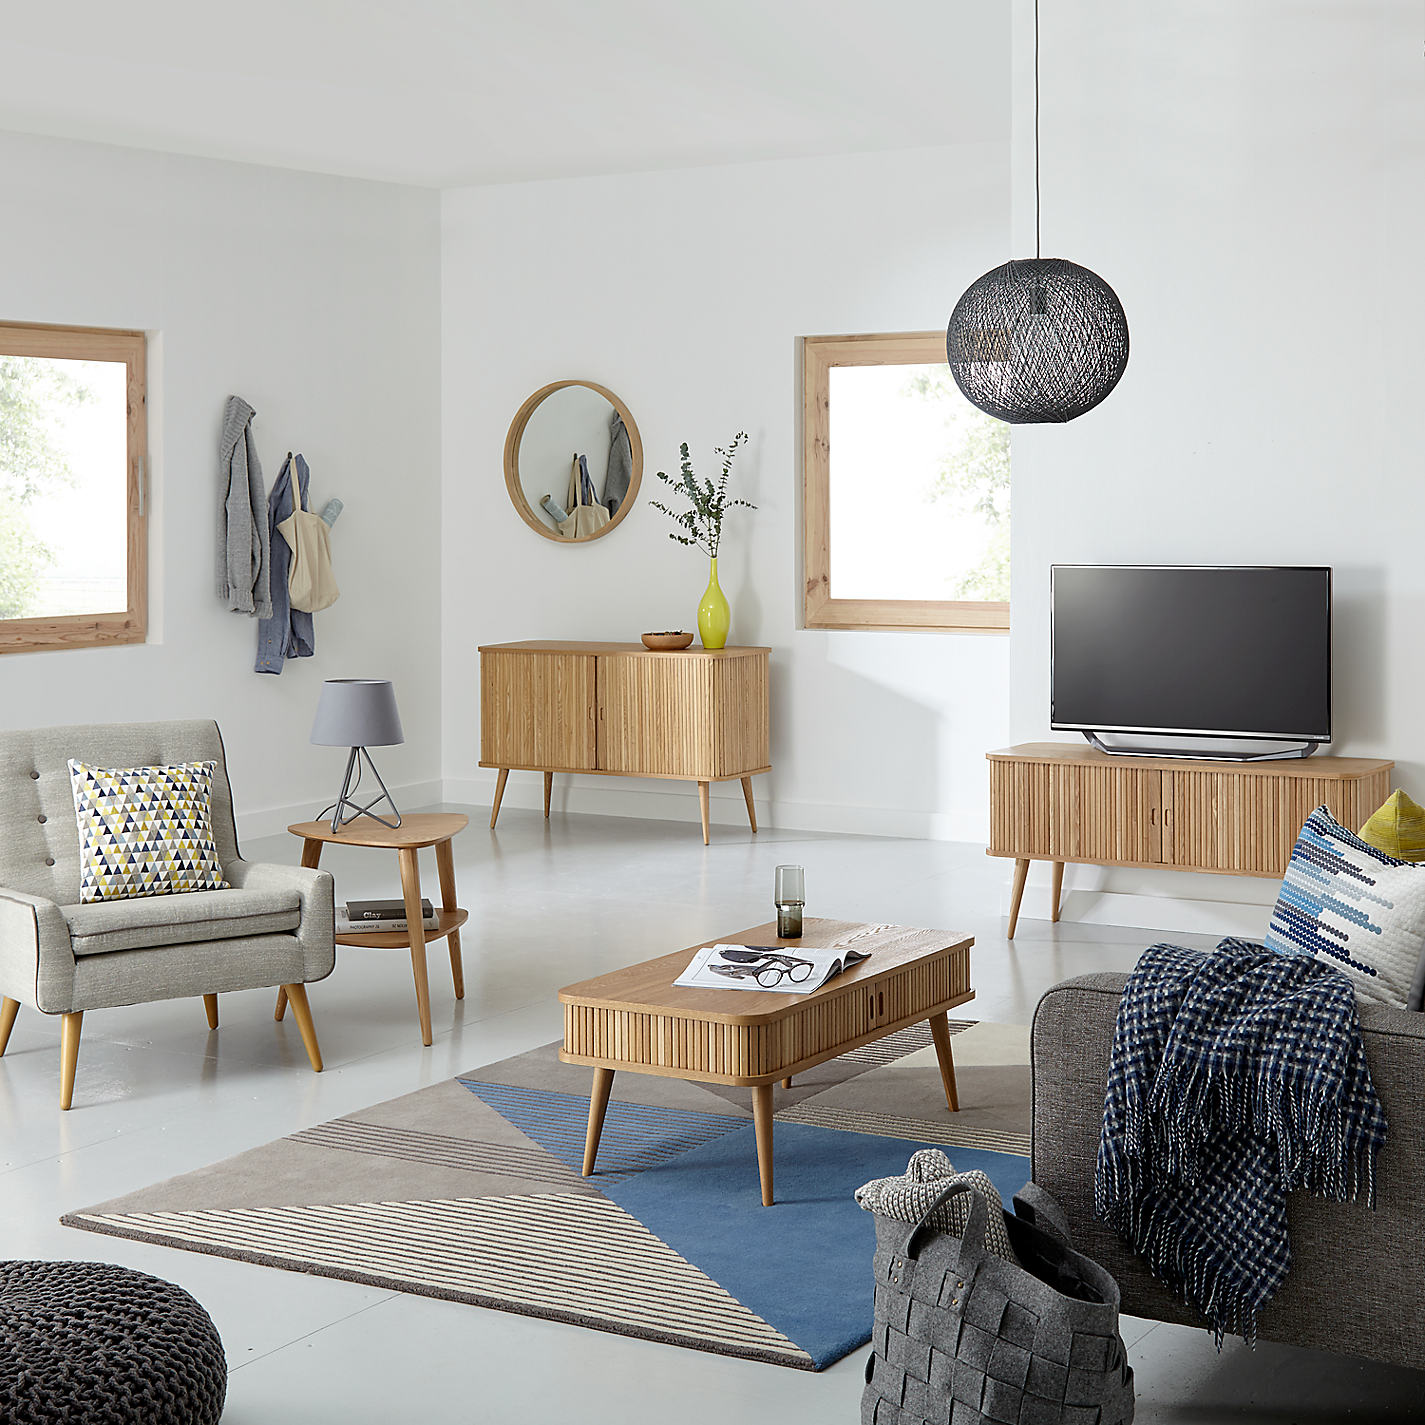 Buy John Lewis Grayson Living Room Furniture Range Online At Johnlewis